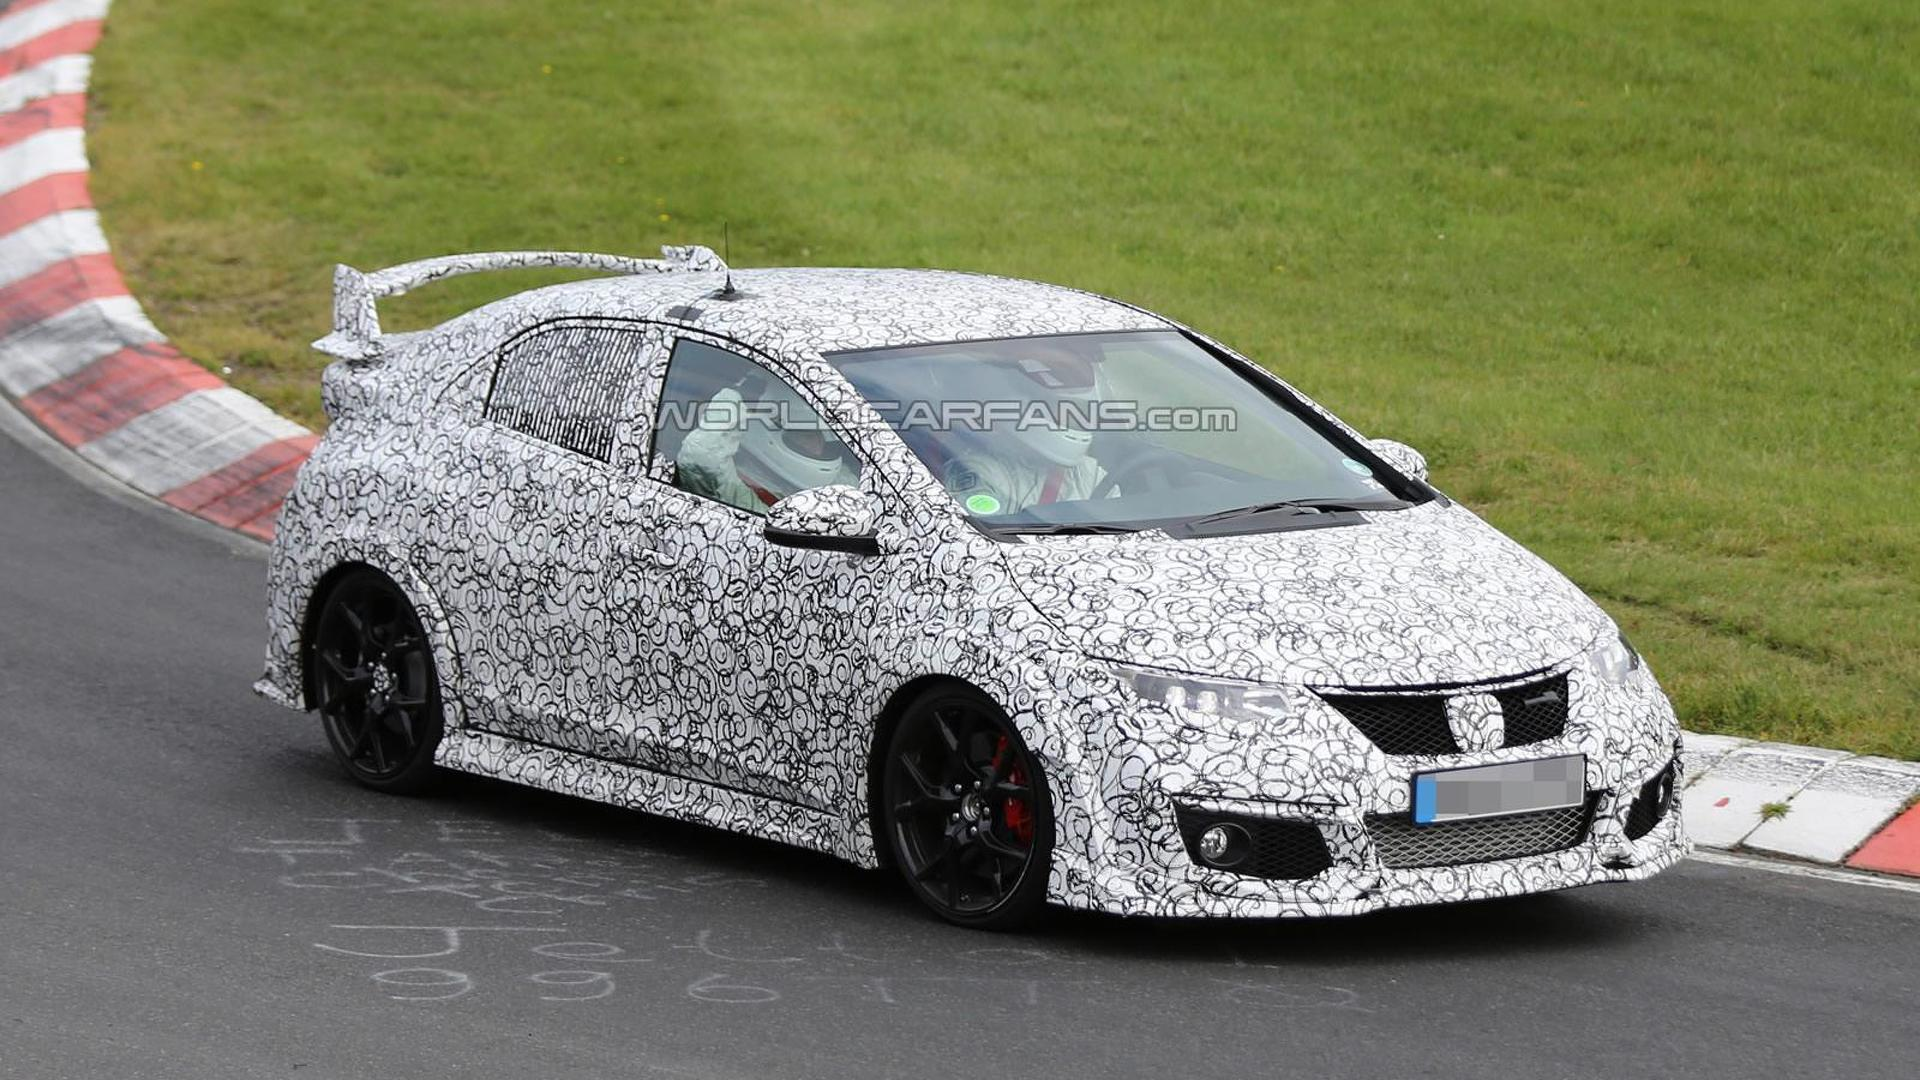 2015 Honda Civic Type R spied hiding production body at the Nurburgring